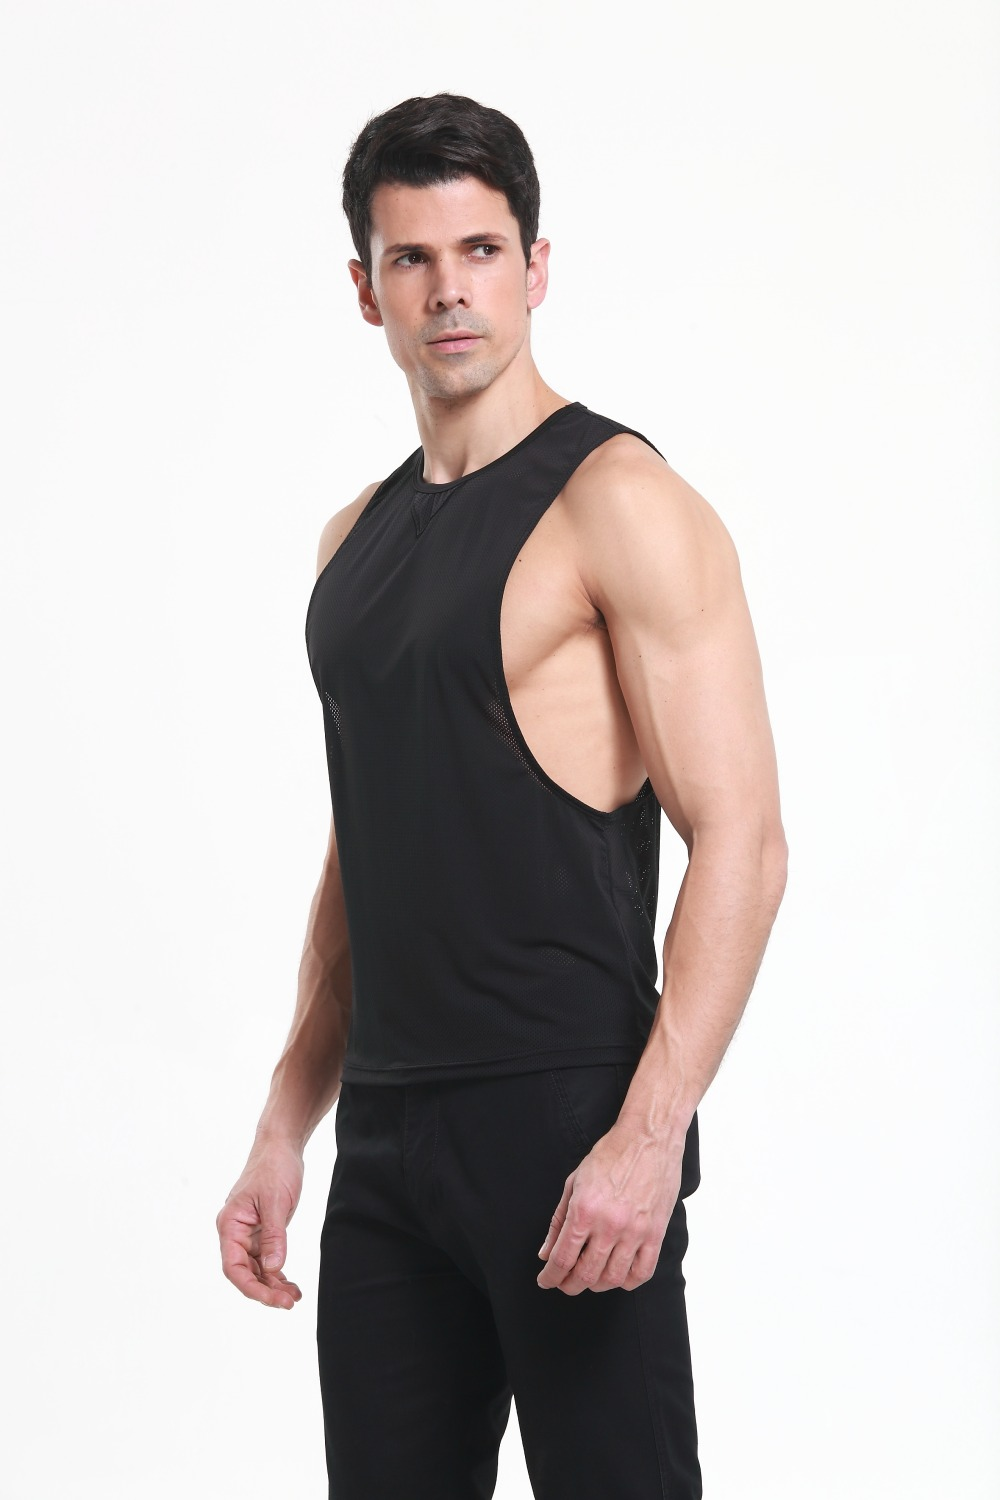 a7806128f3ef3 New mens summer net open side loose nylon slim fit men gyming tank tops  clothing bodybuilding